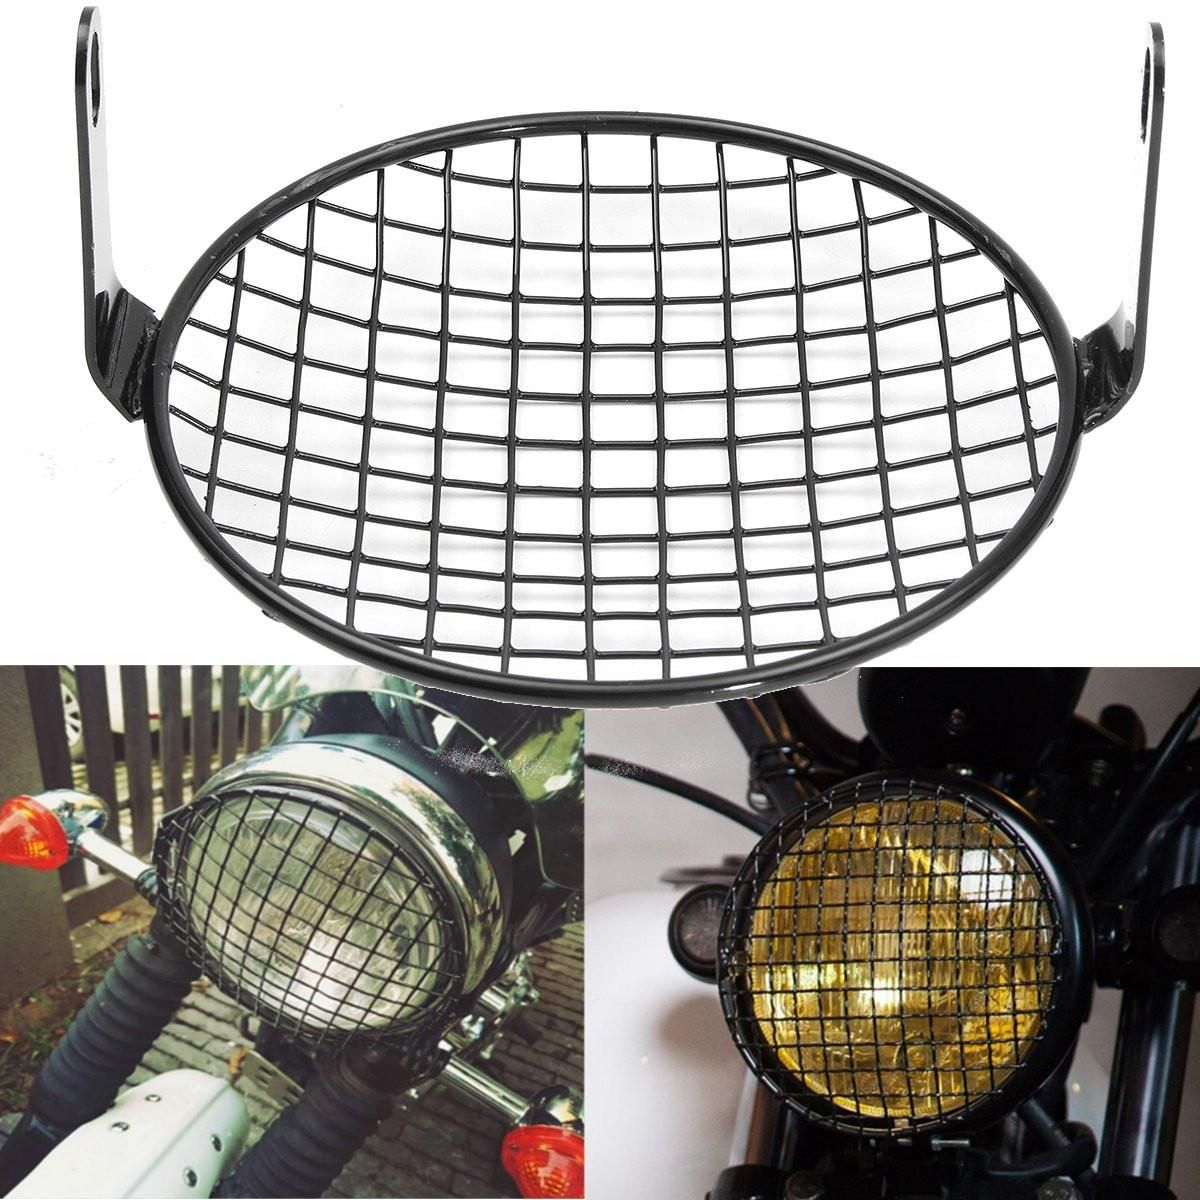 16cm 6.4 Inch Steel Retro Motorcycle Grill Mount Headlight Lamp Cover For Honda /Bobber /CB